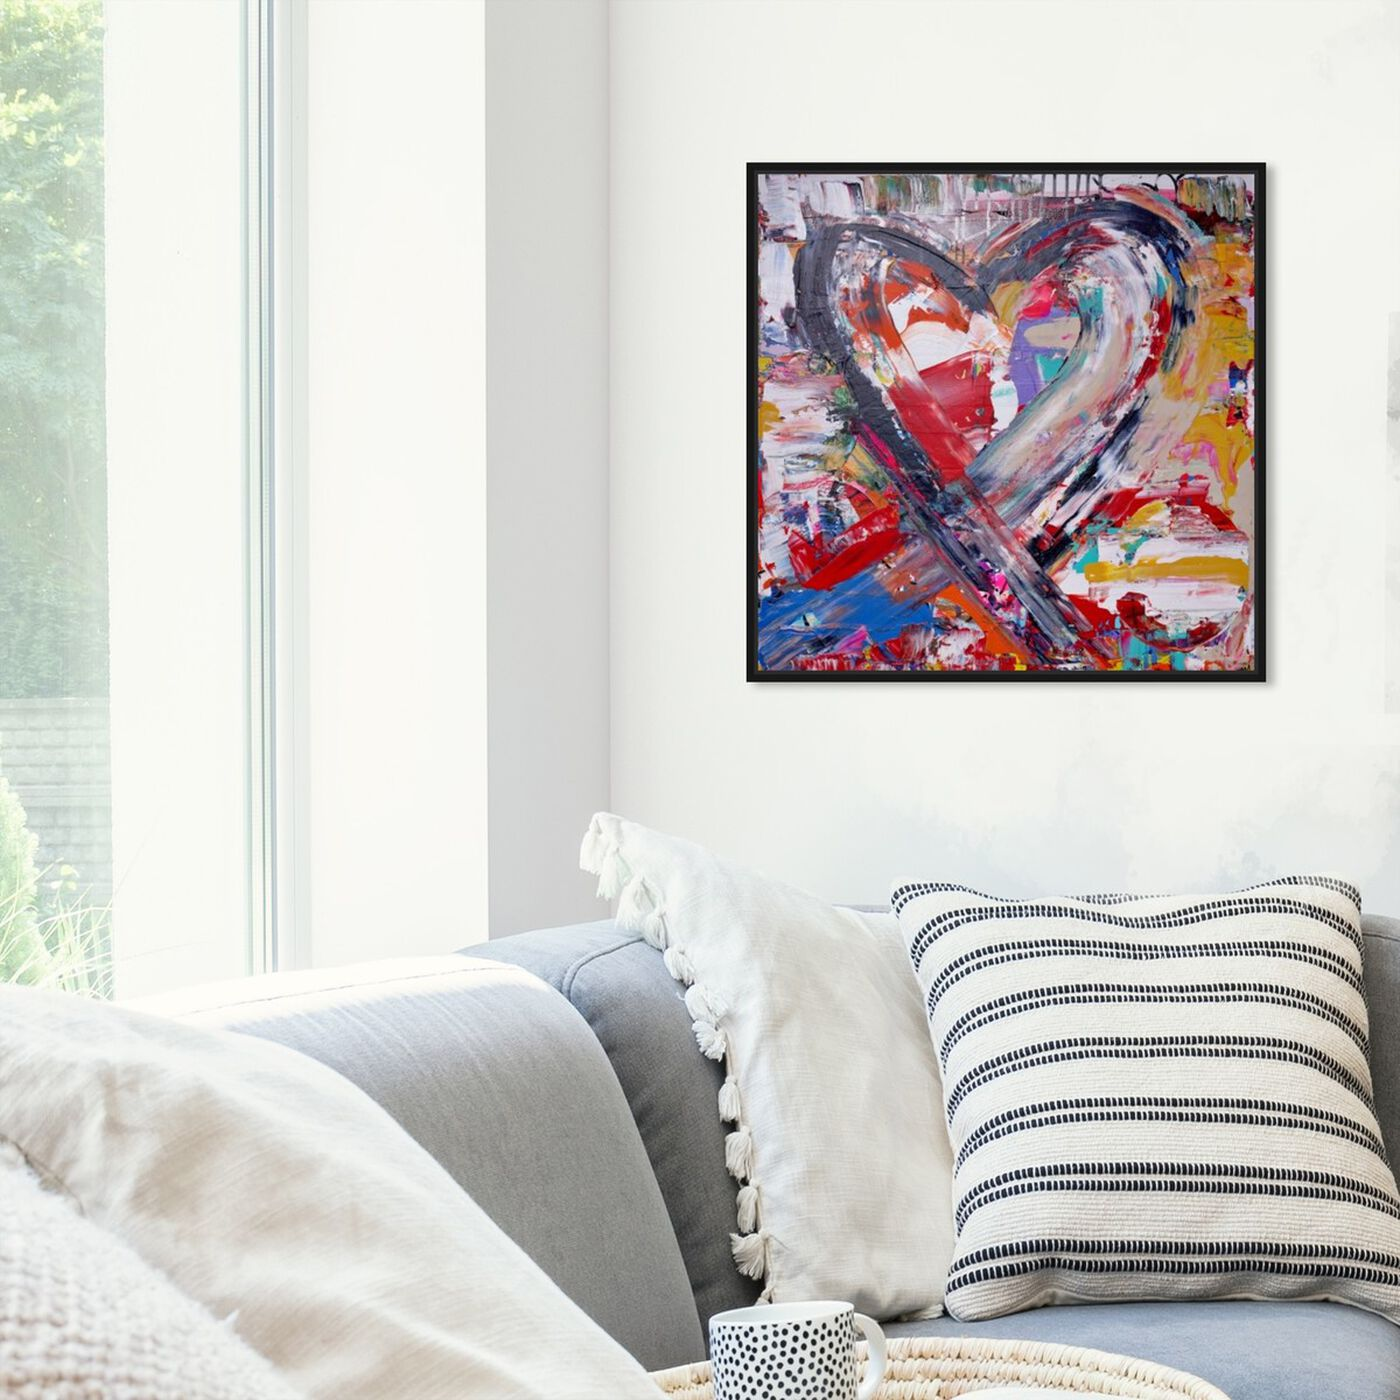 Hanging view of Fallen In Love featuring fashion and glam and hearts art.